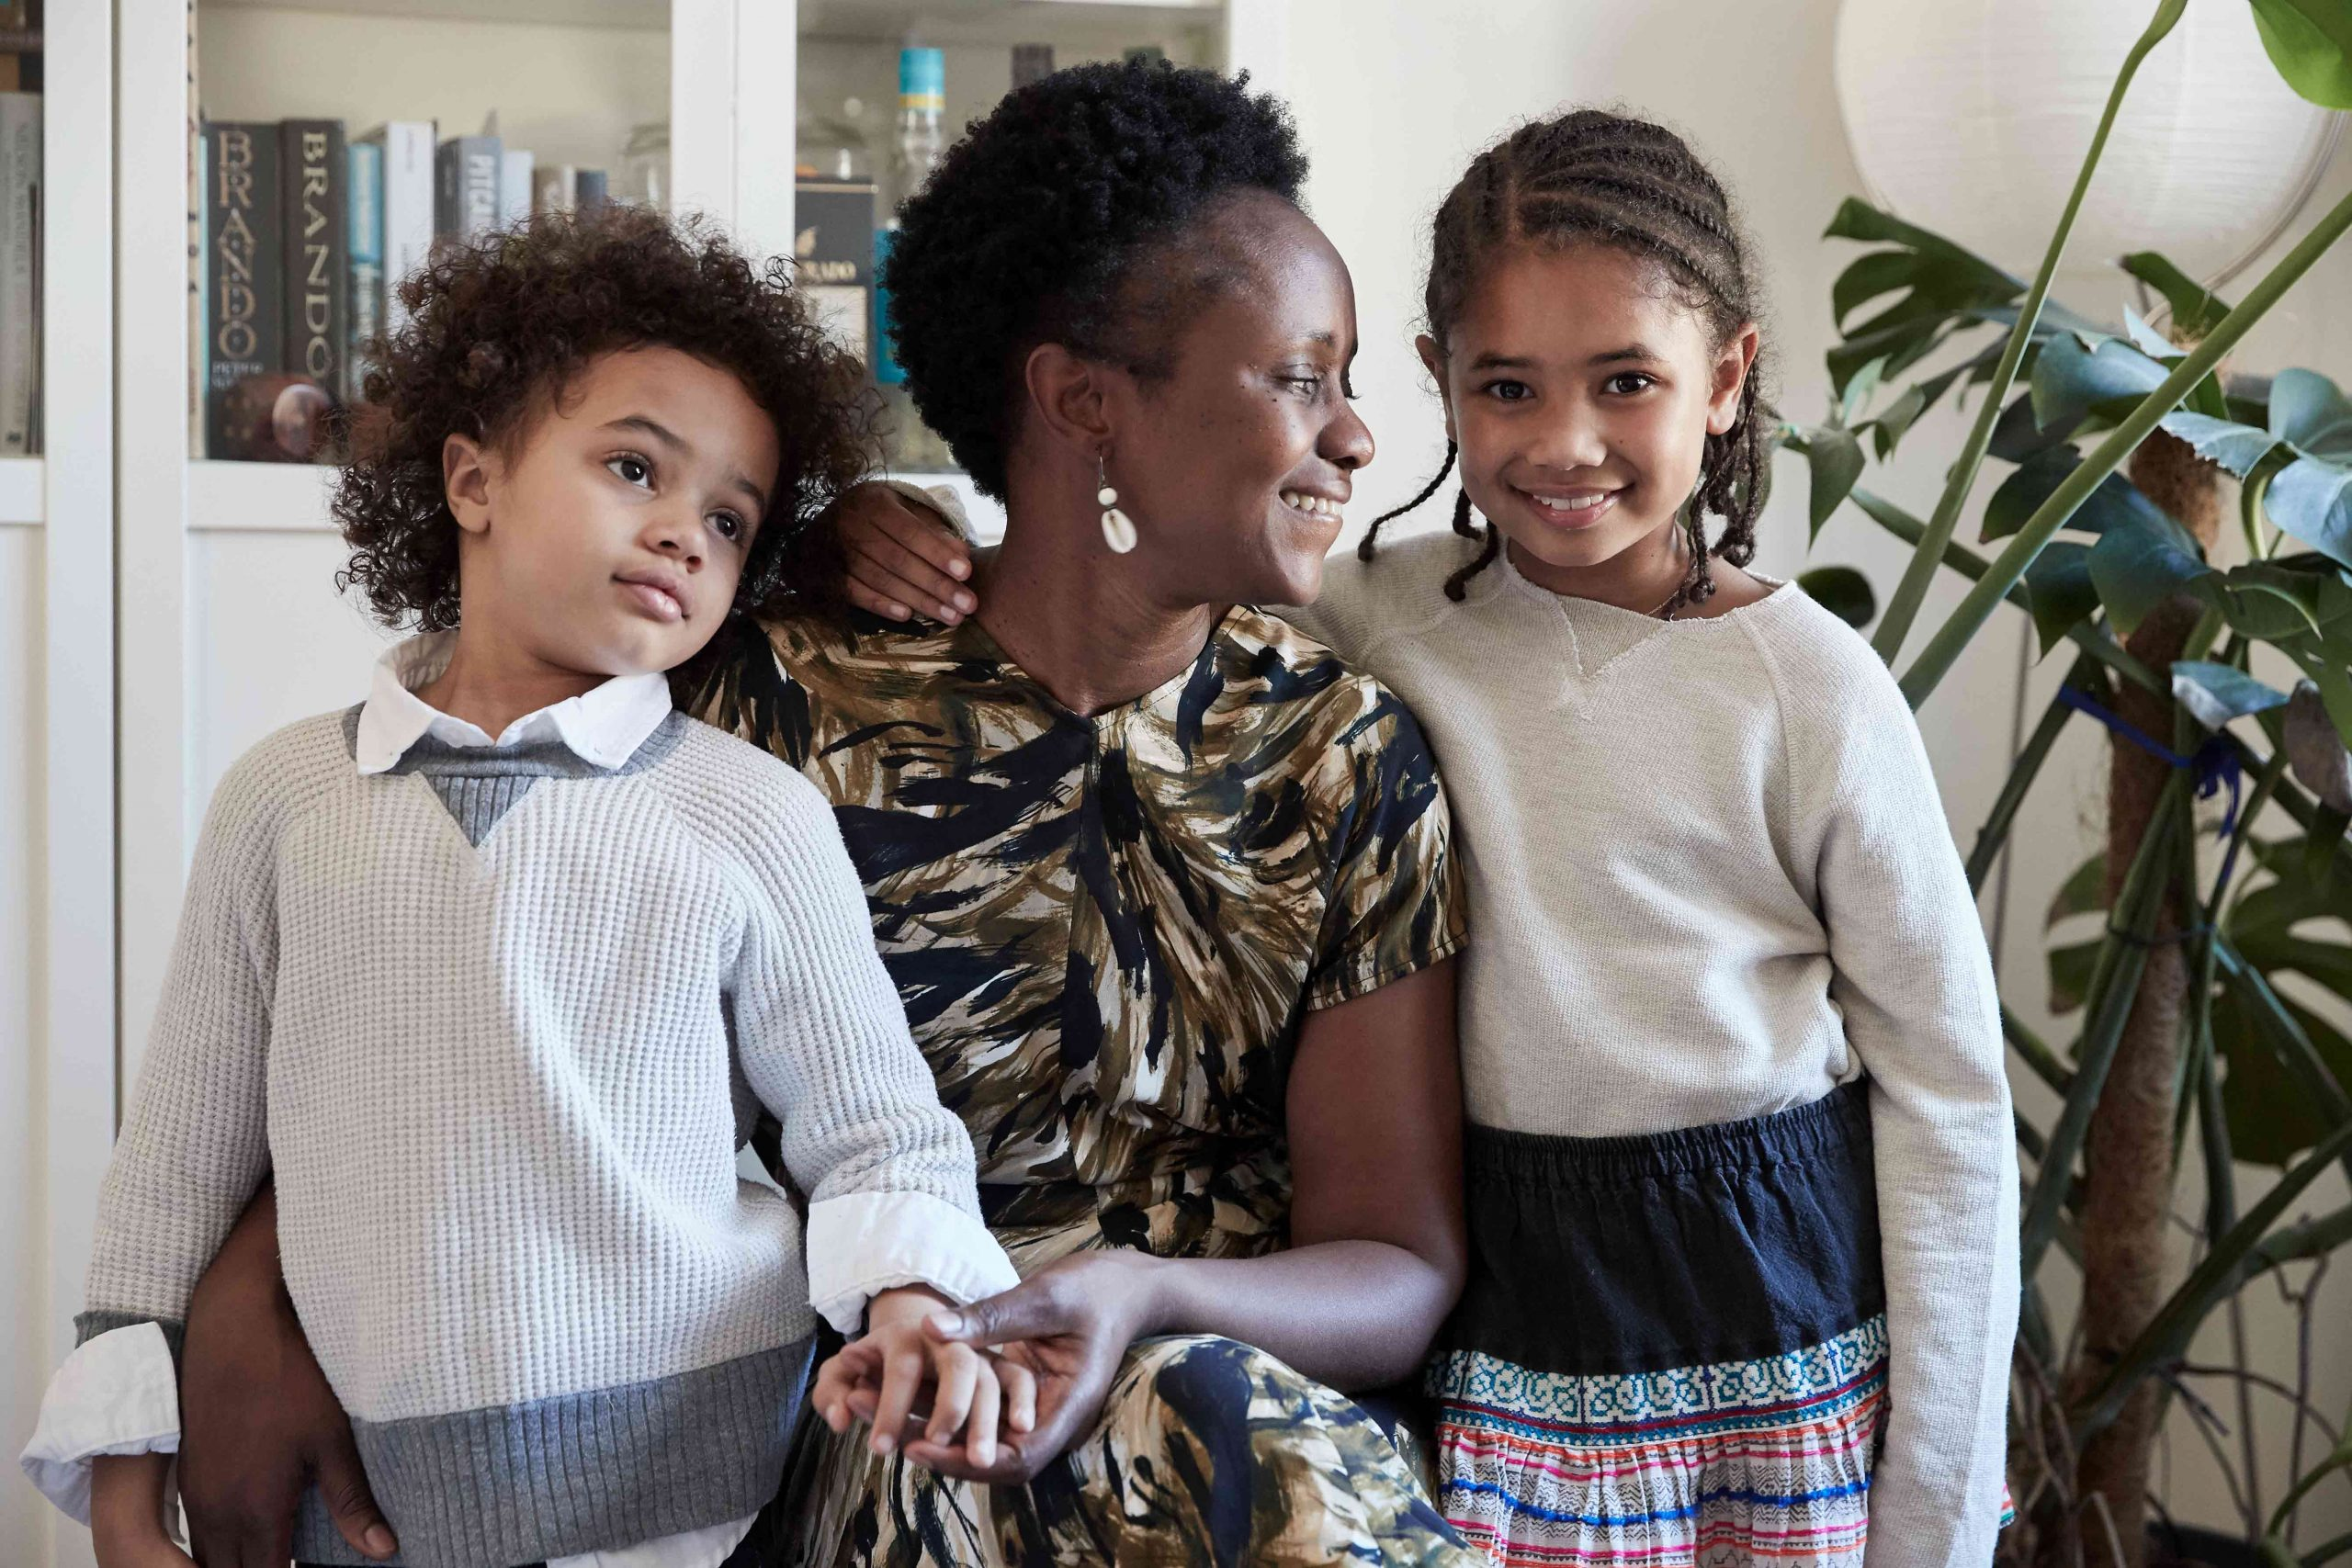 Aminata Conteh-Biger's Journey from Unimaginable Trauma to Becoming a Power for Good – Episode 24 of The Grace Tales Podcast